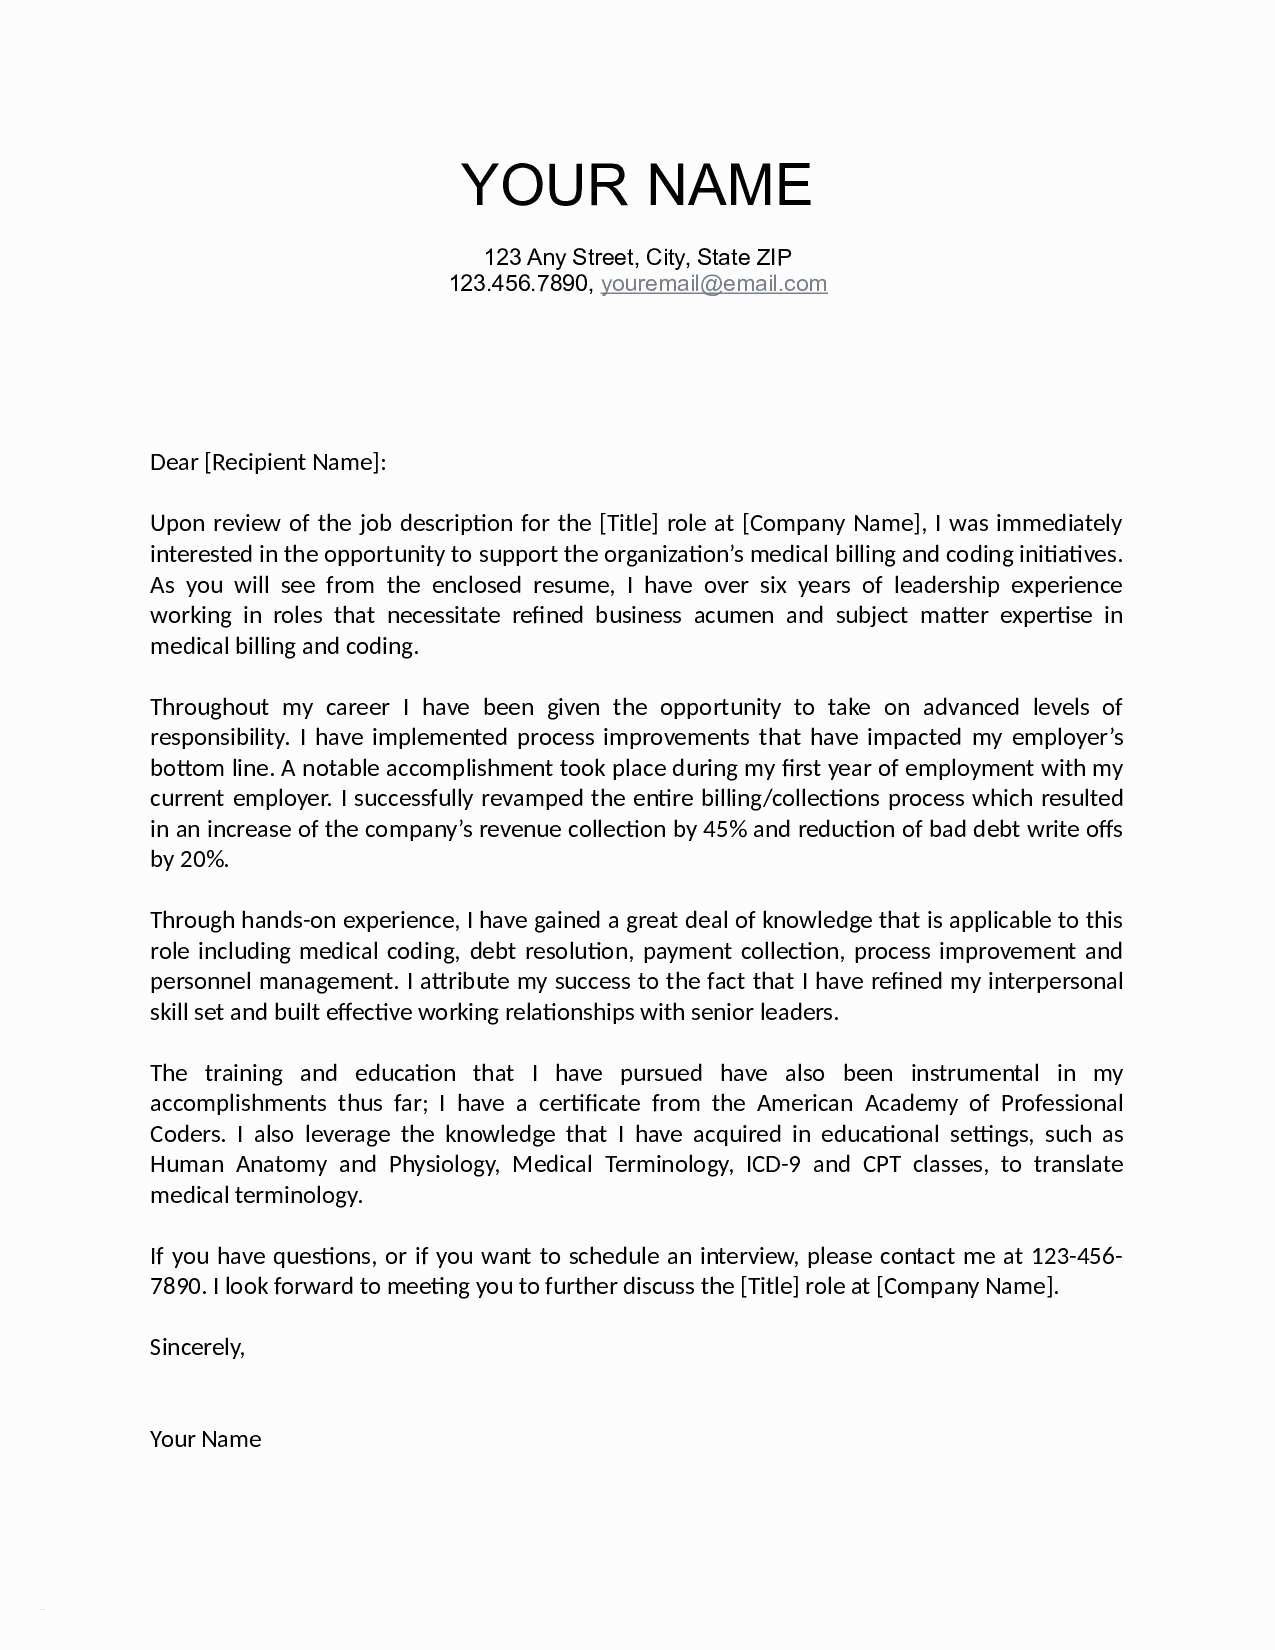 Employment Thank You Letter Template - New Thank You Letter Business Template Tellmeladwp